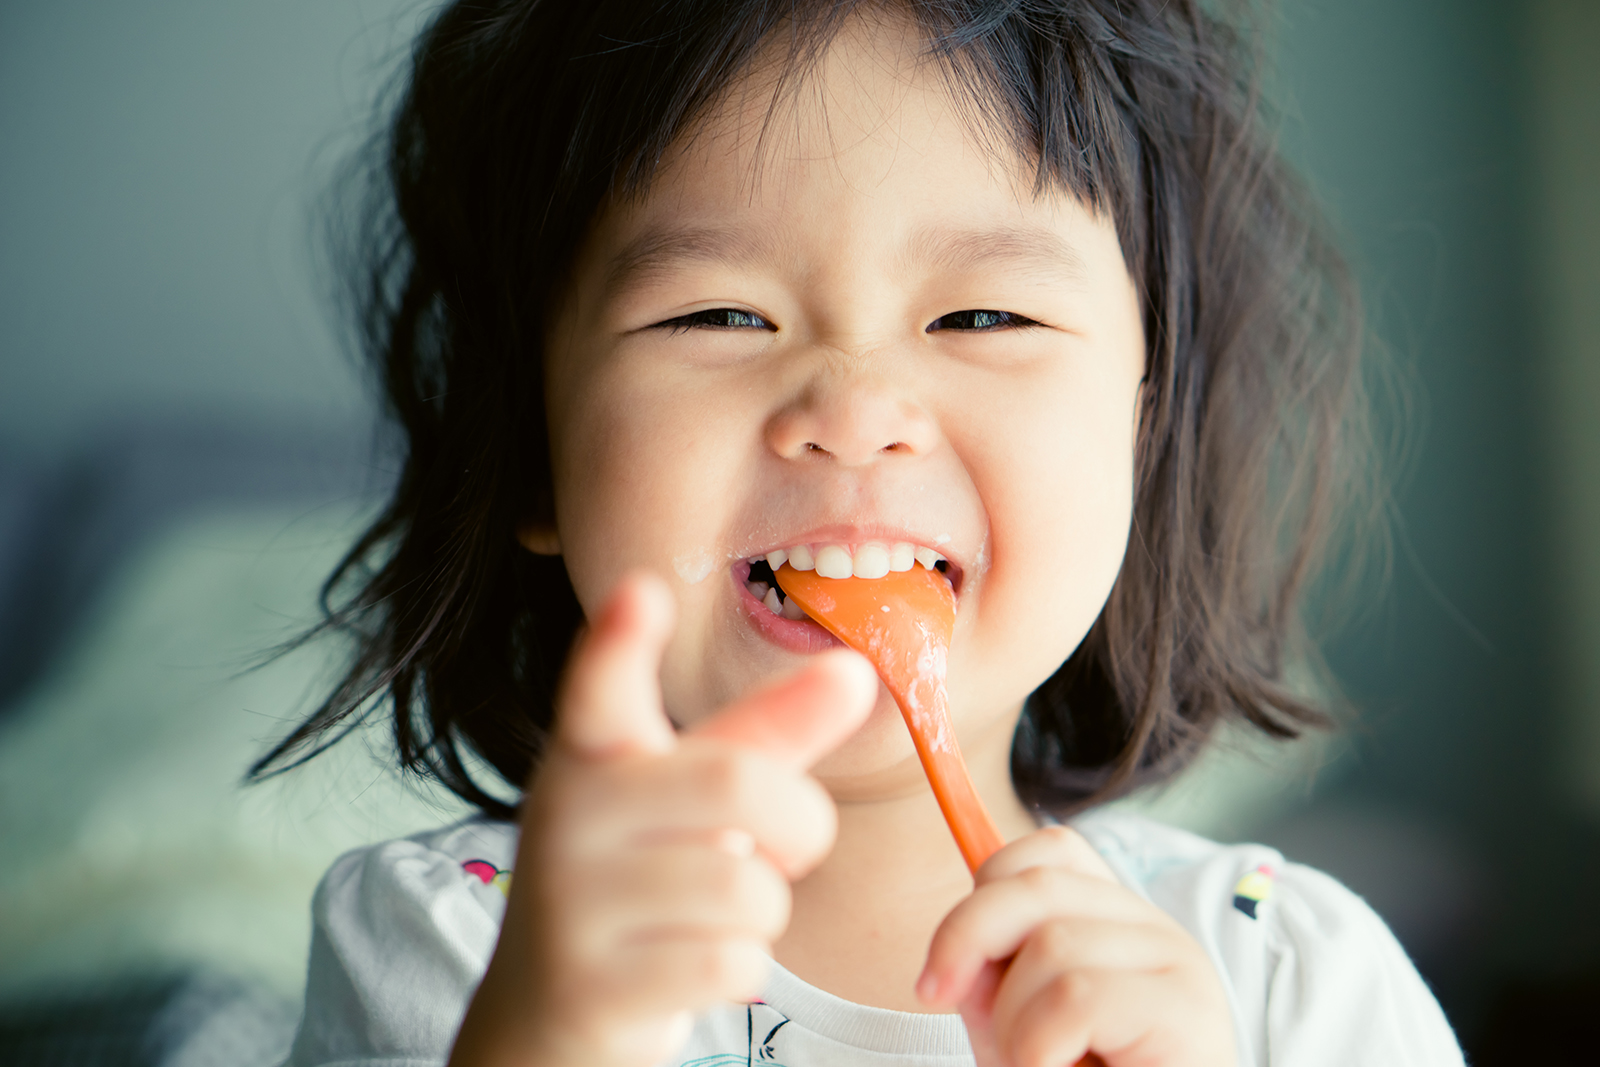 little-girl-with-spoon-pointing-at-camera